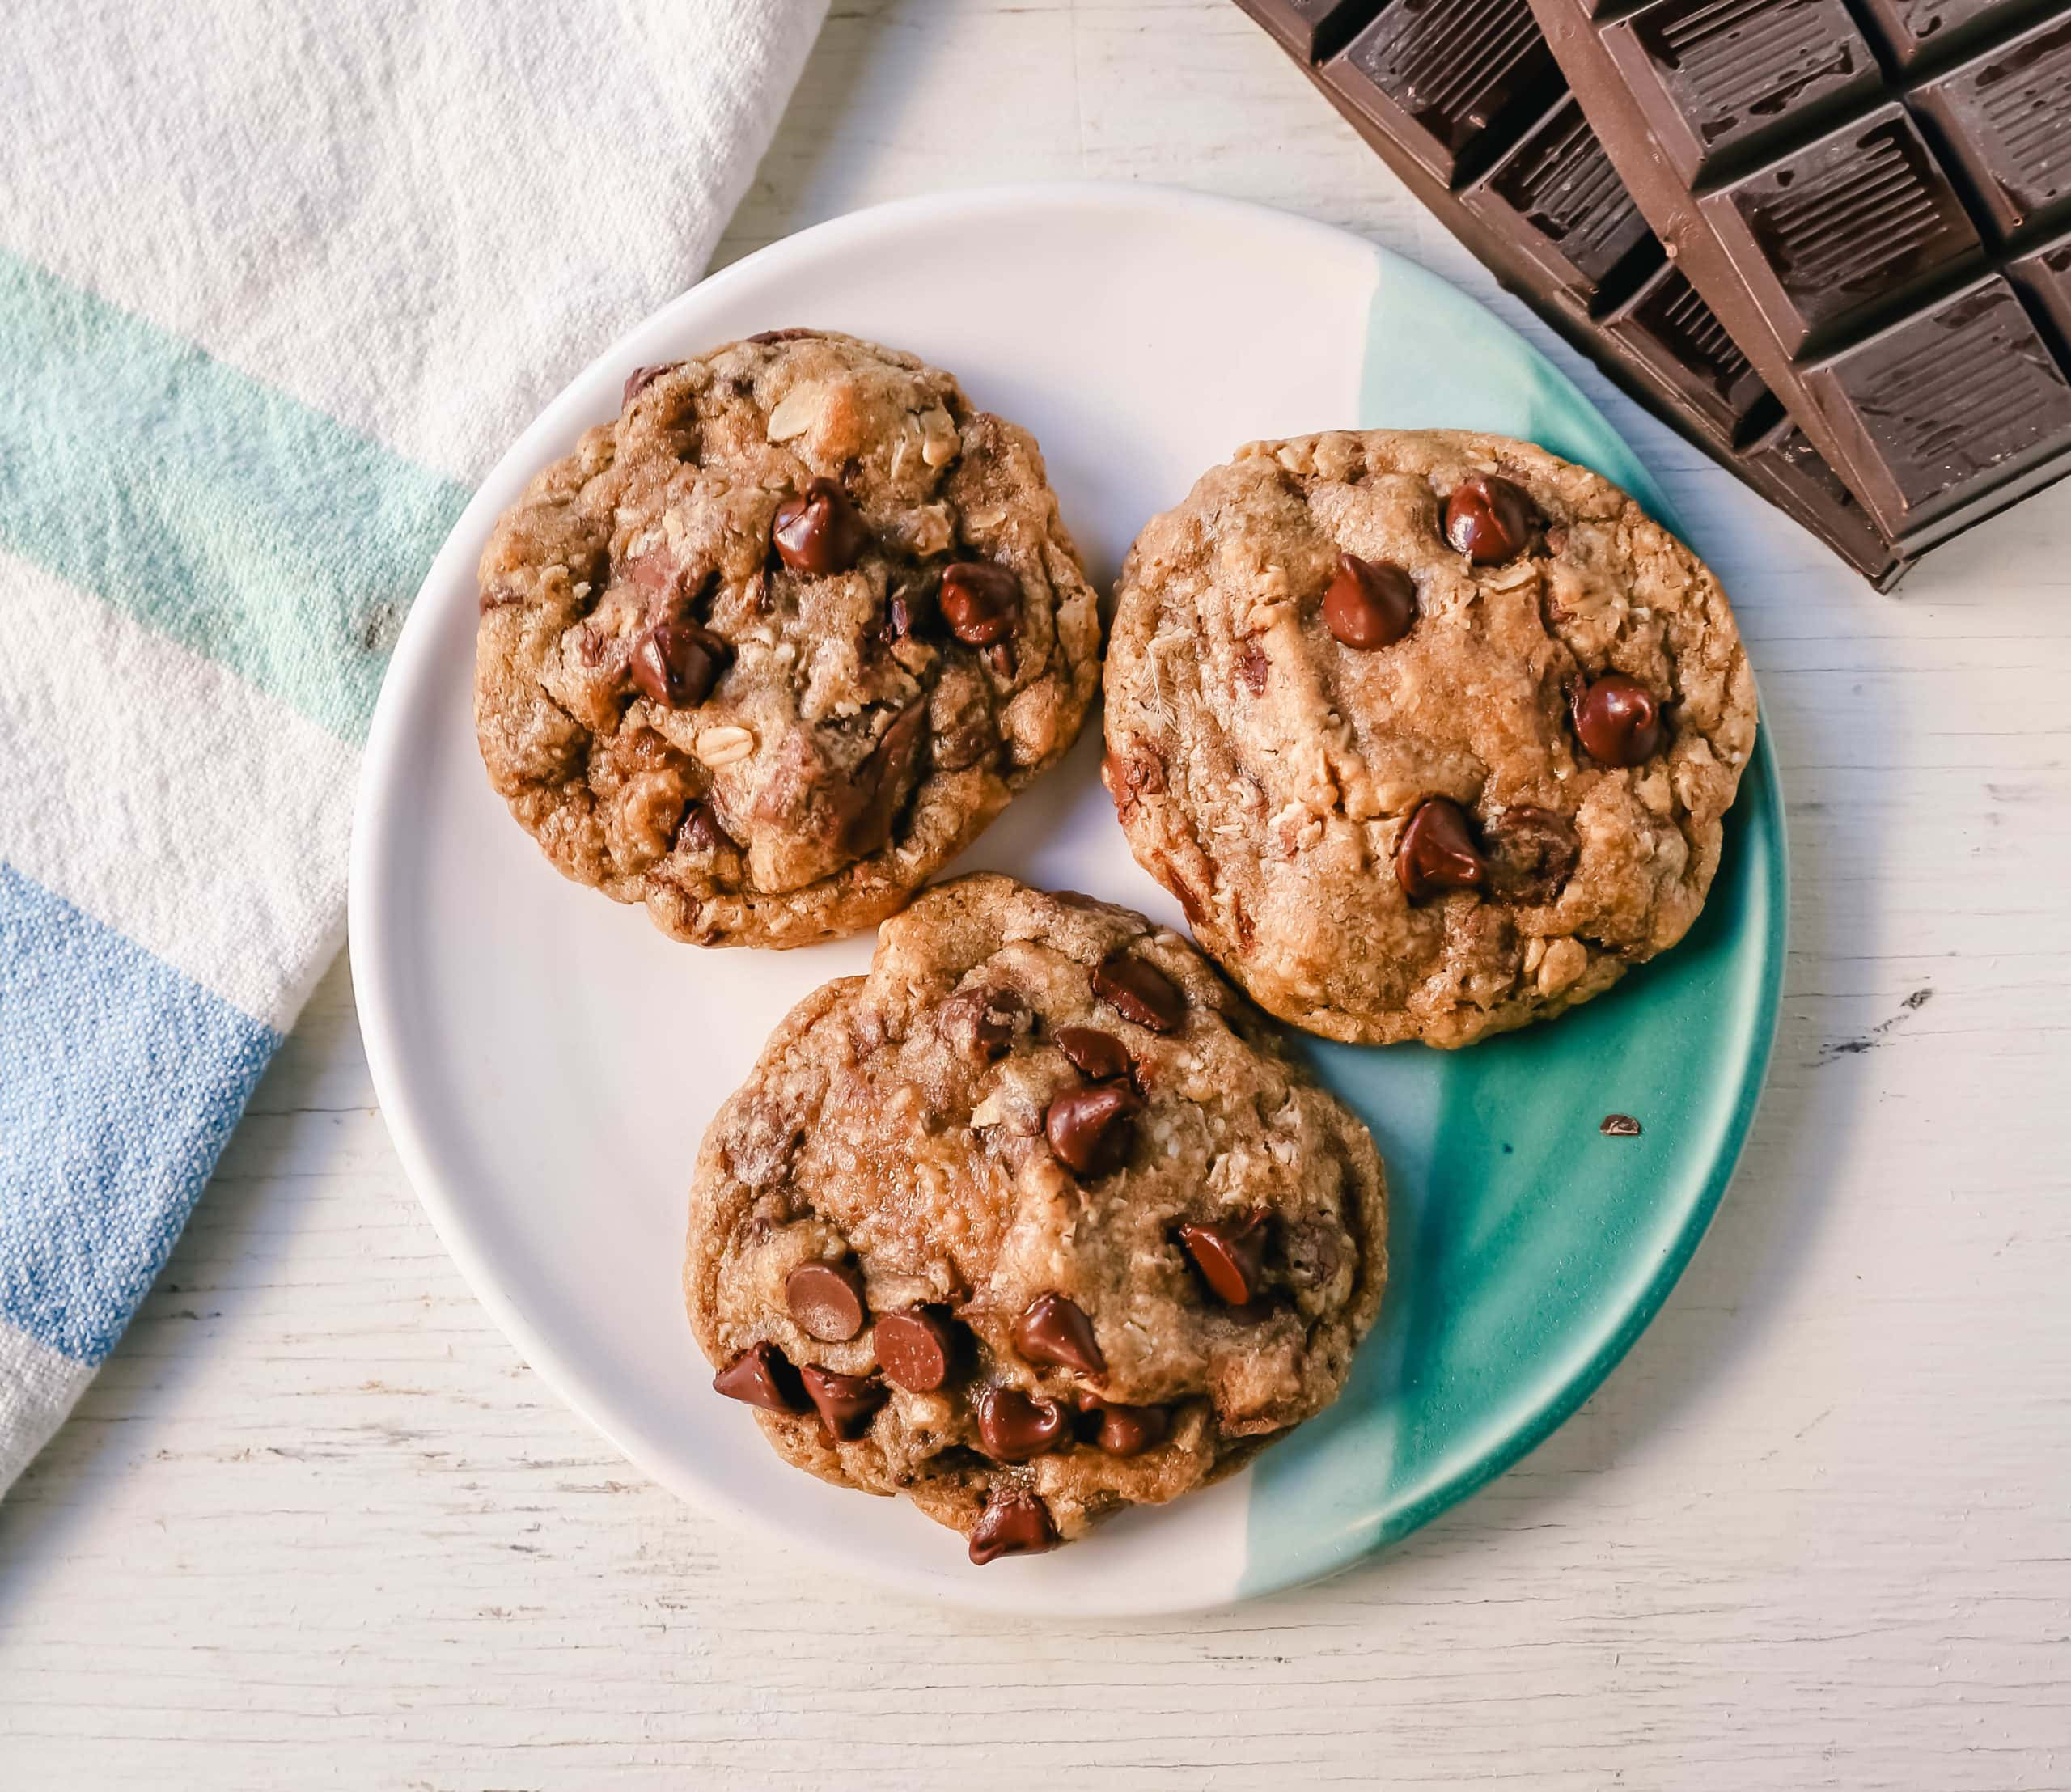 Oatmeal Chocolate Chip Cookies Soft, chewy oatmeal cookies with chocolate chips. The Best Oatmeal Chocolate Chip Cookie recipe! www.modernhoney.com #cookies #oatmealcookies #oatmealchocolatechipcookies